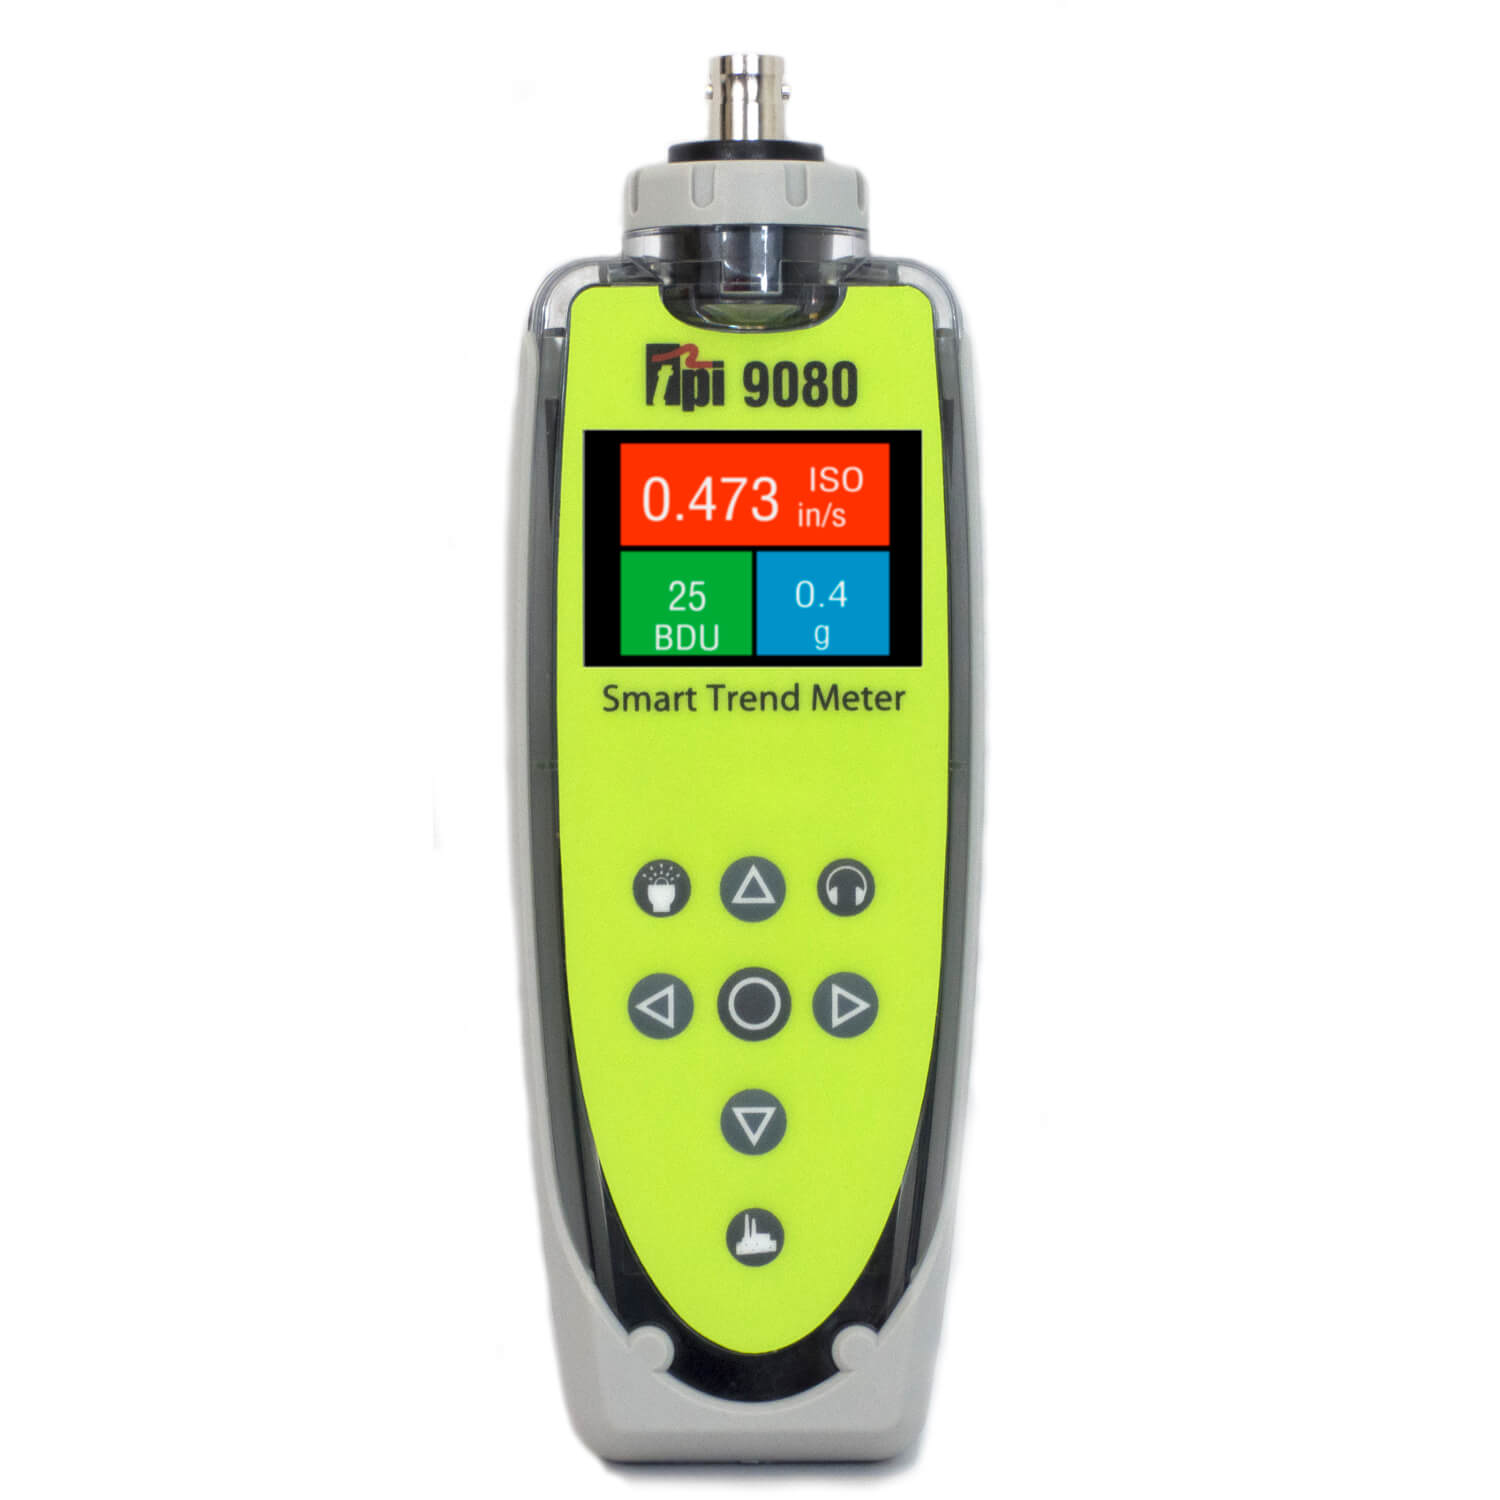 TPI 9080 VibTrend Handheld Digital Smart Vibration Meter